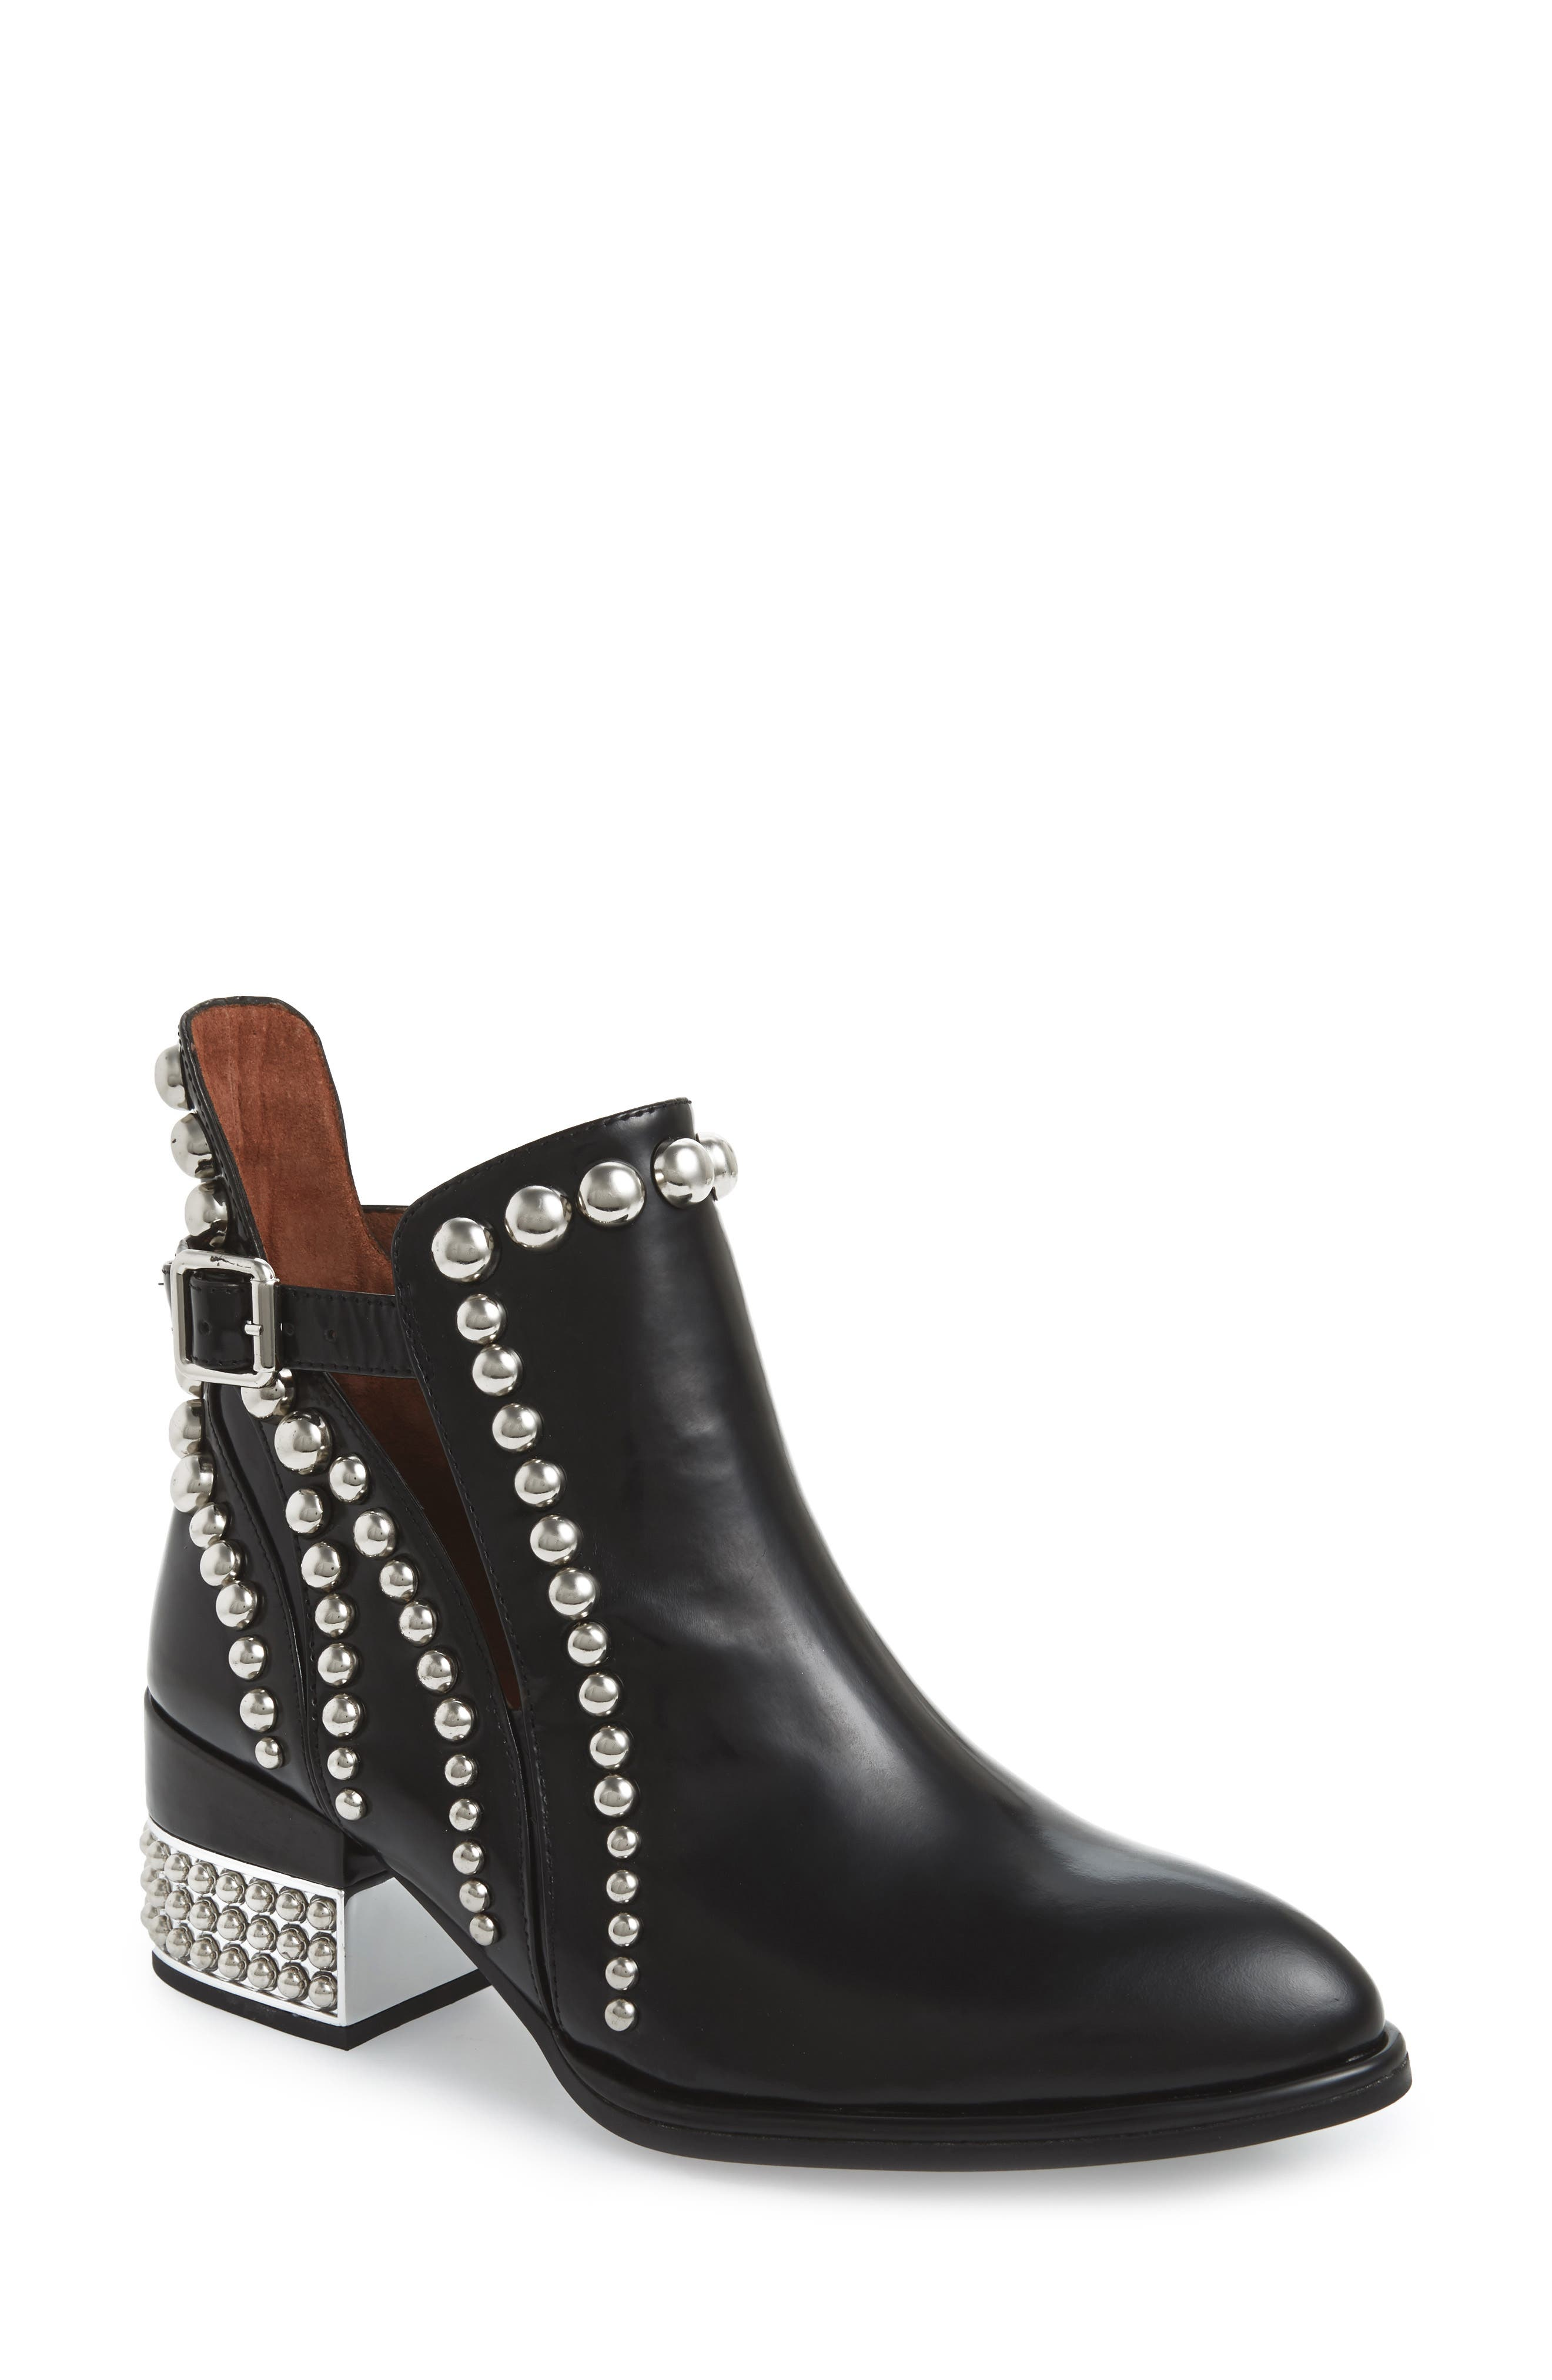 JEFFREY CAMPBELL Rylance Bootie, Main, color, BLACK BOX SILVER